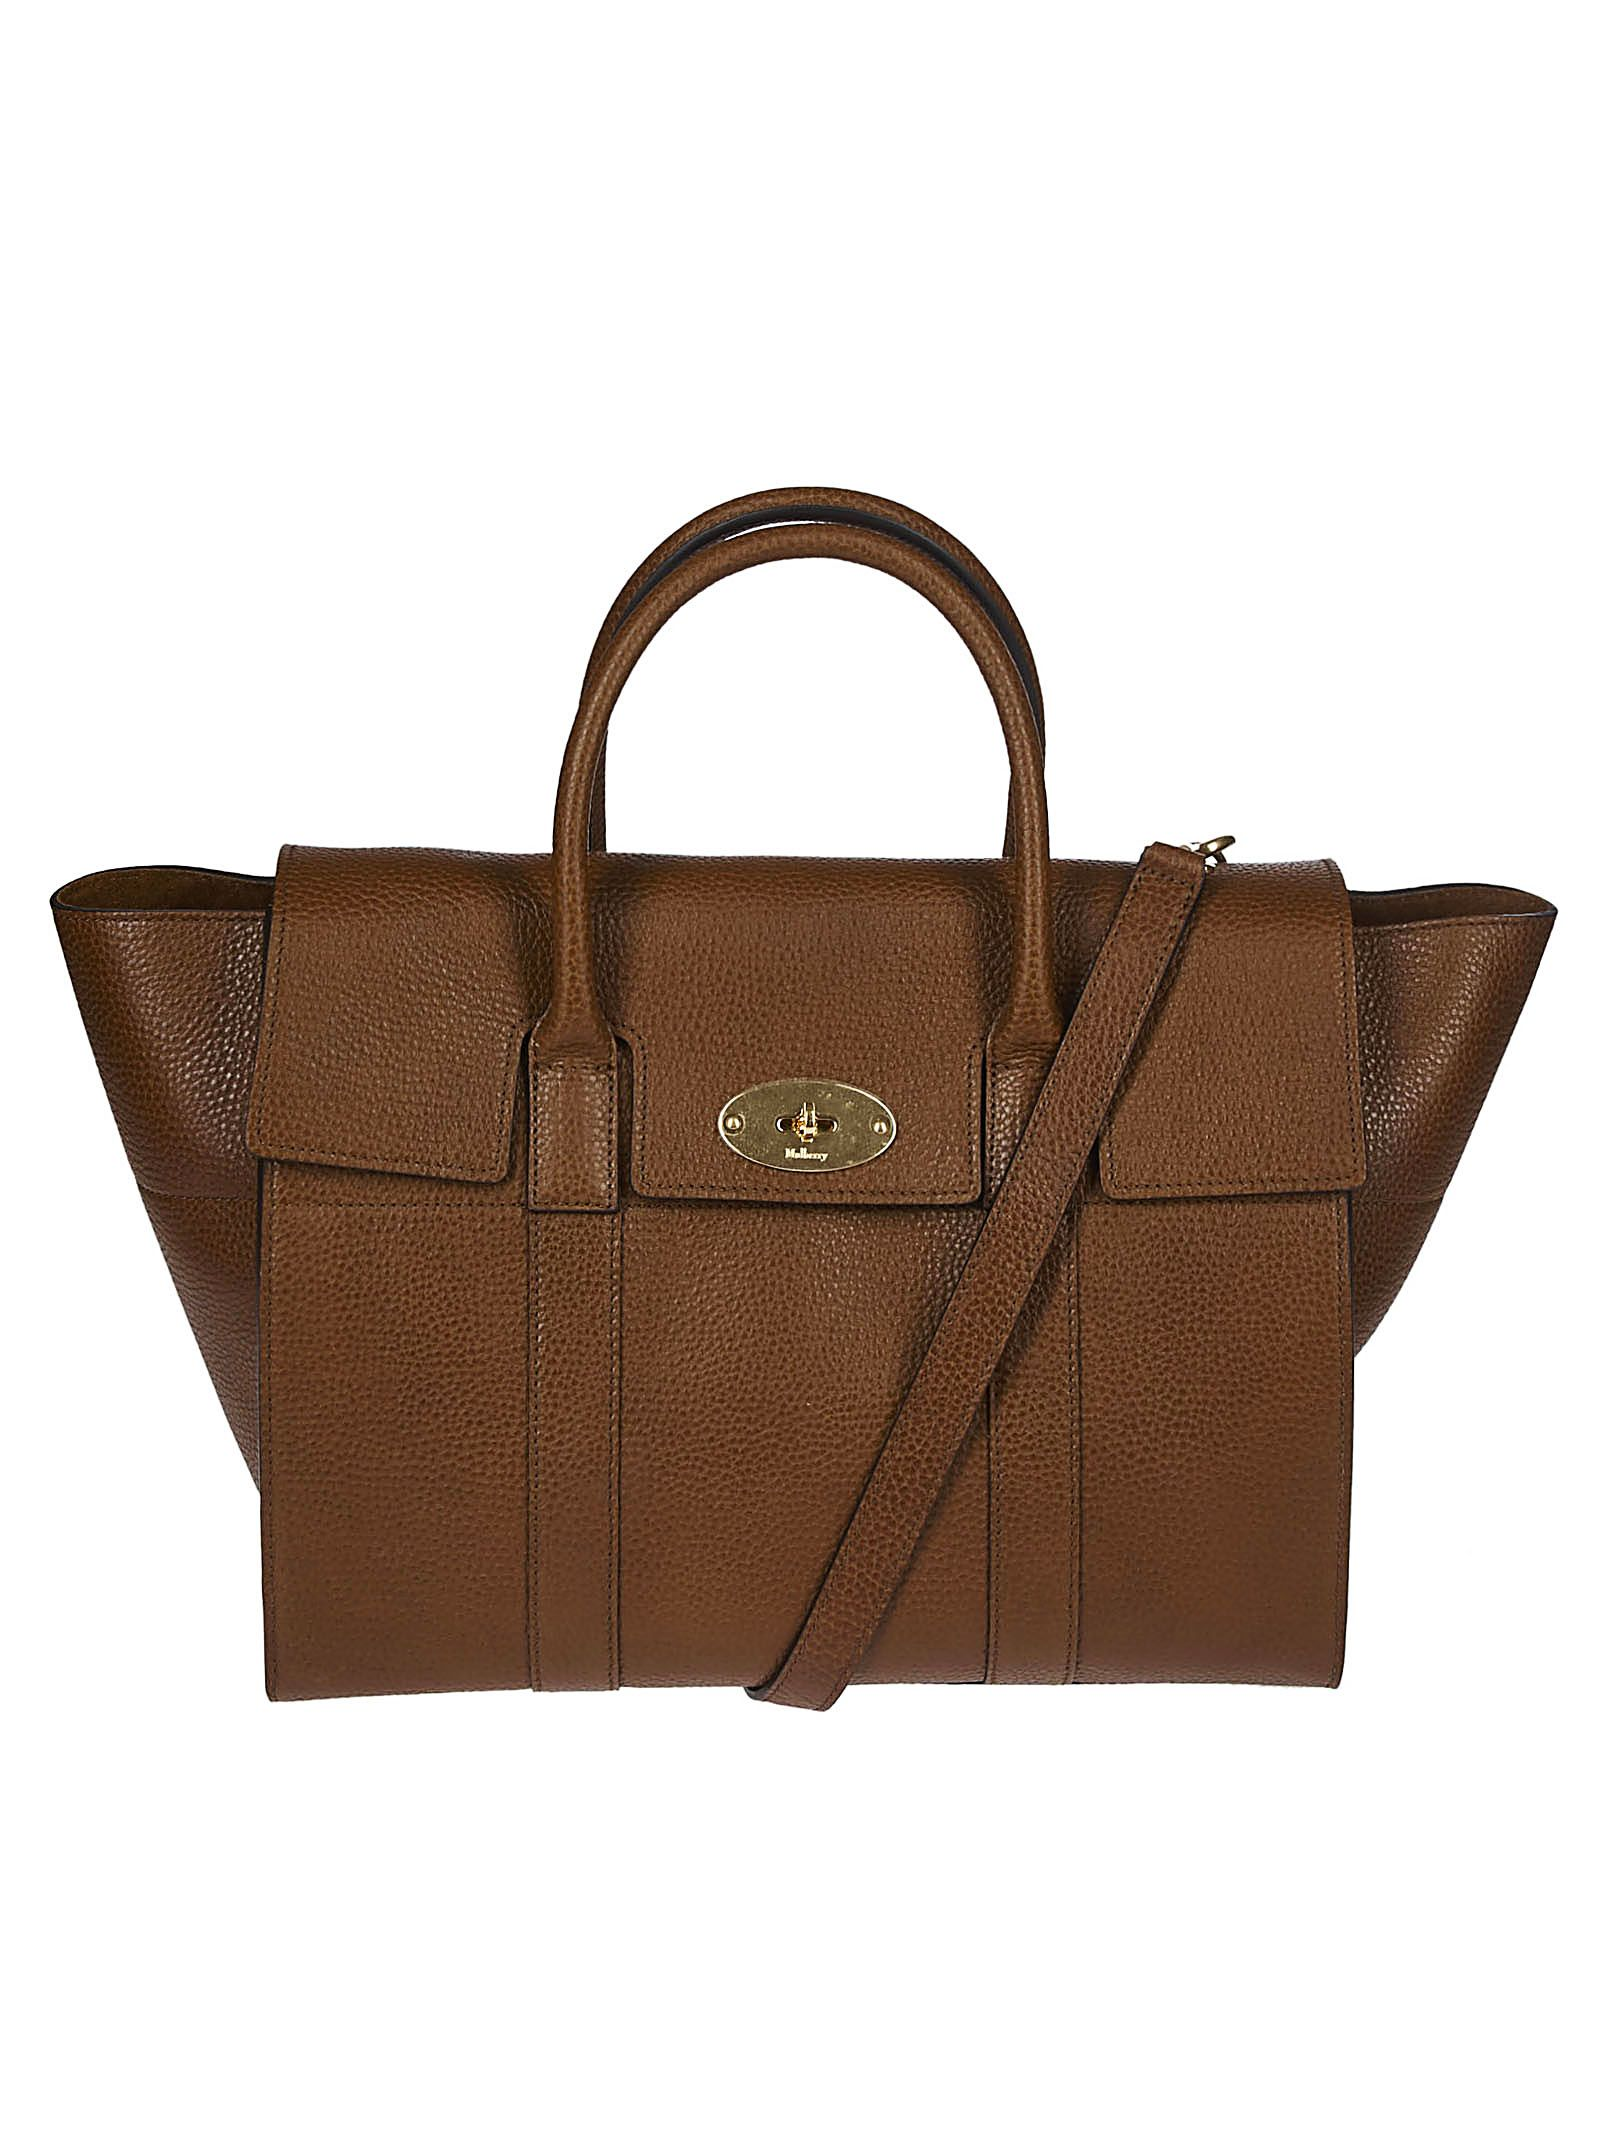 d831fa0b0b Mulberry Mulberry Fold-over Closure Tote - Brown - 10829497 | italist